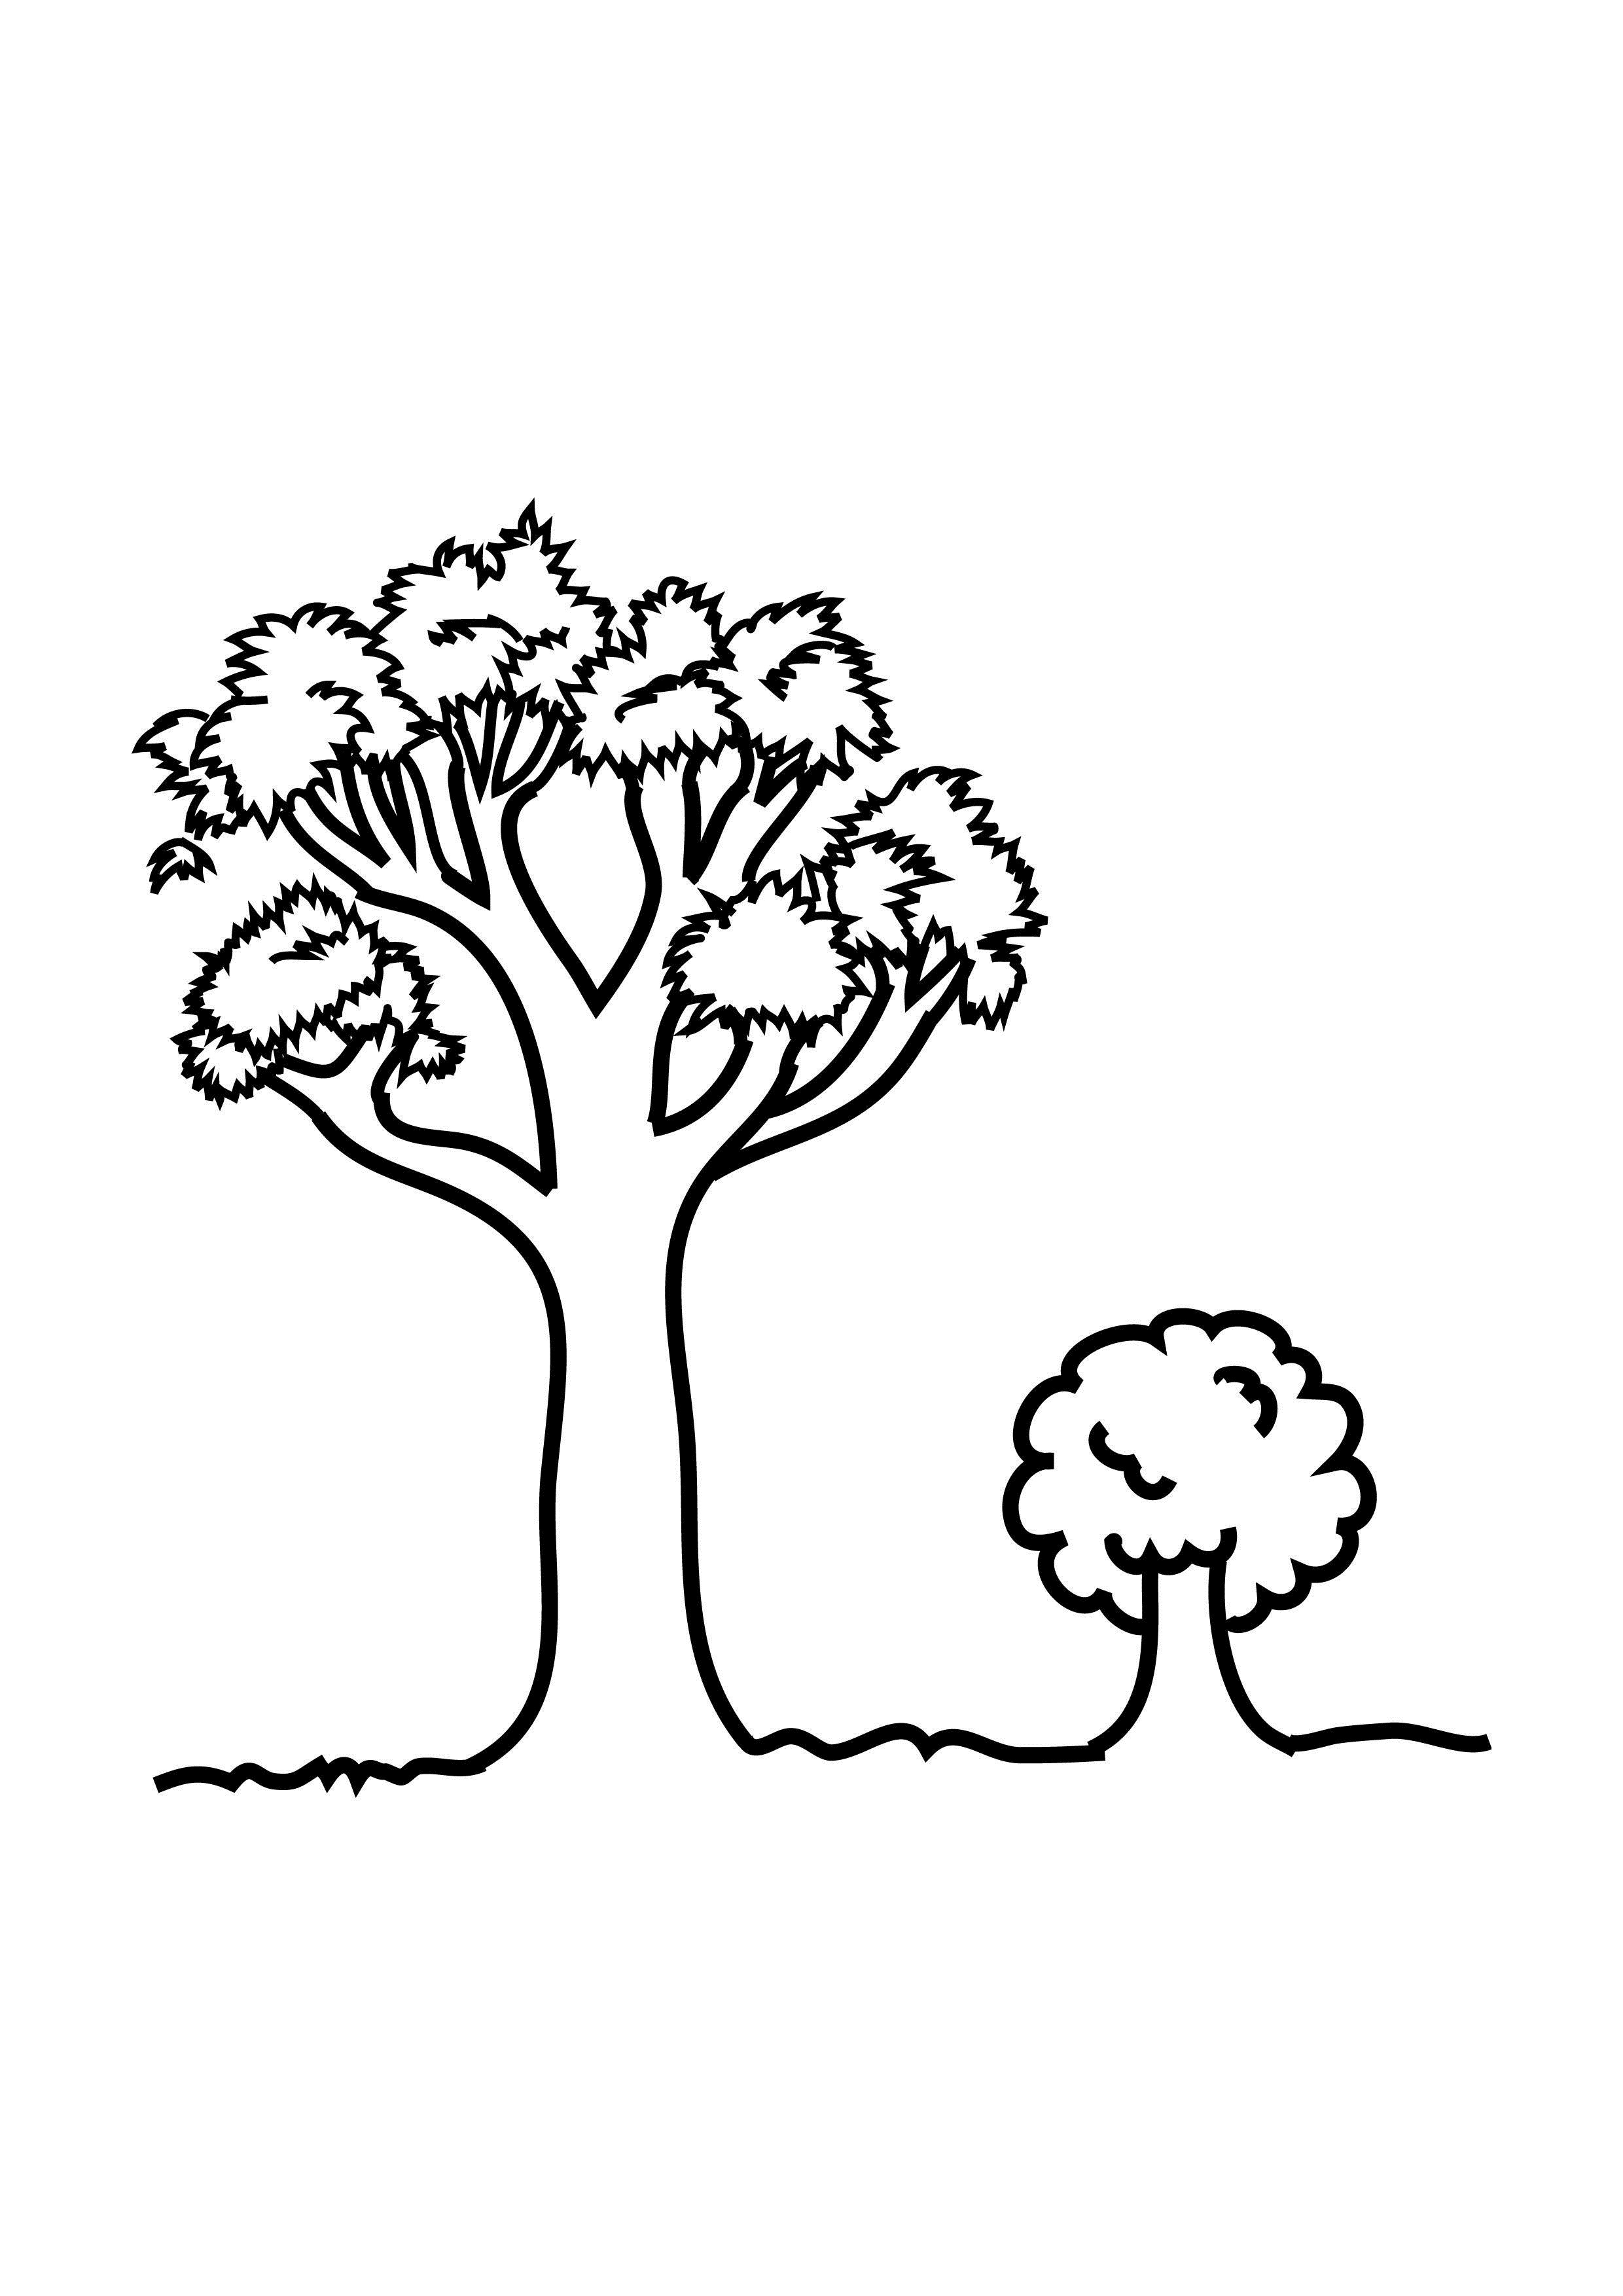 Action Best Opposites Coloring Pages Images best big and small coloring pages for kids printable view larger image gallery images